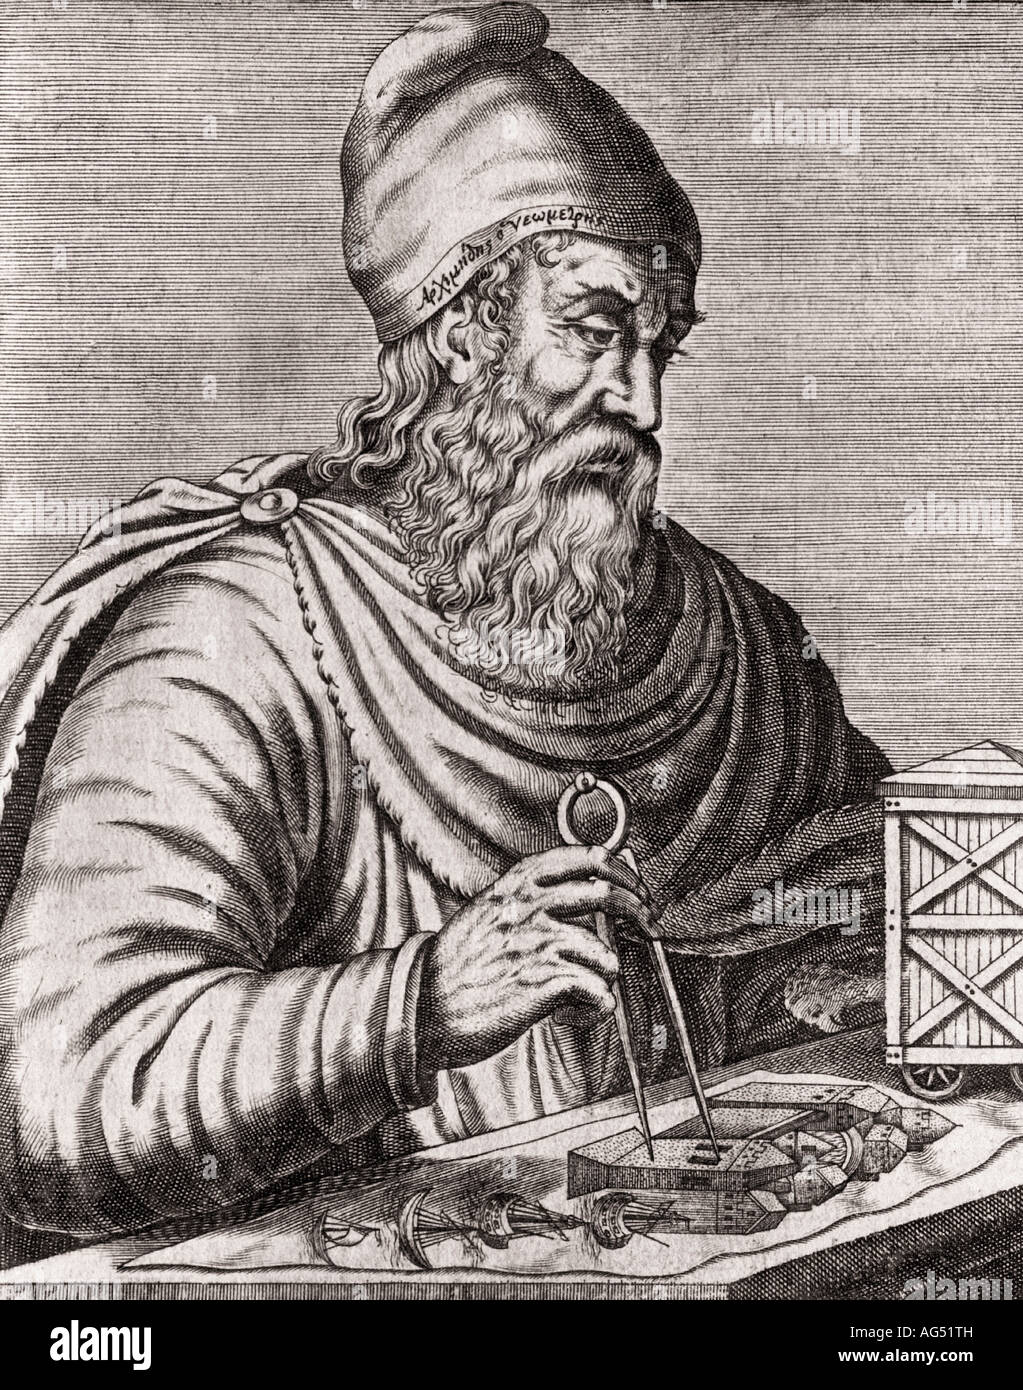 the life of the mathematician archimedes Archimedes: archimedes, the most-famous mathematician and inventor in ancient greece.